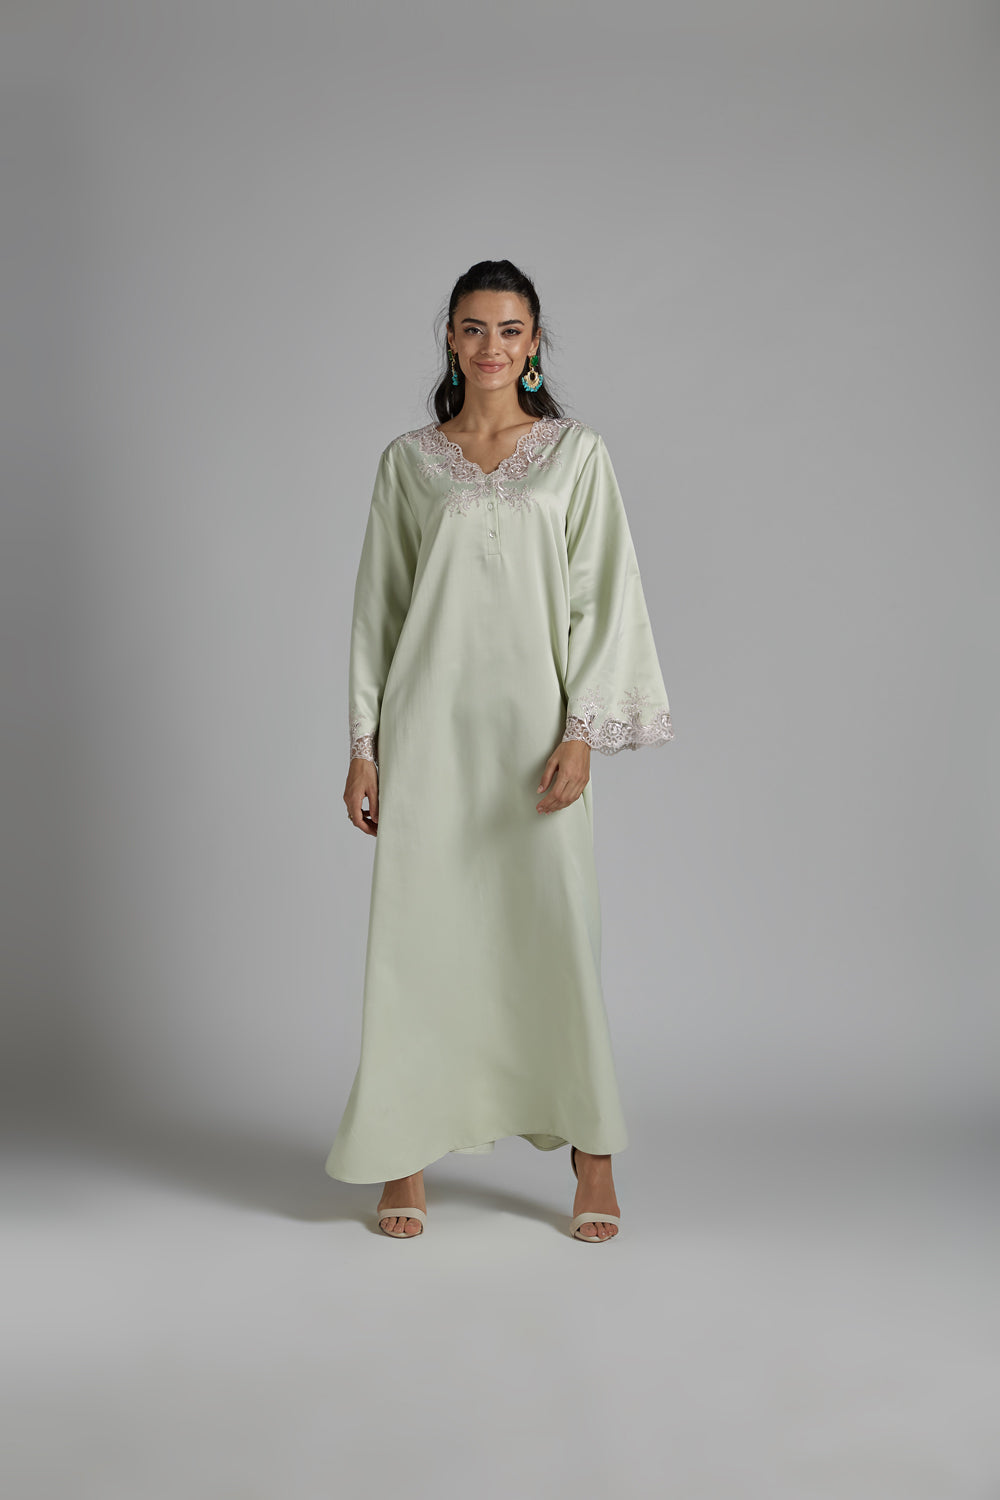 Trimmed Cotton Dress Light Green - Orchid